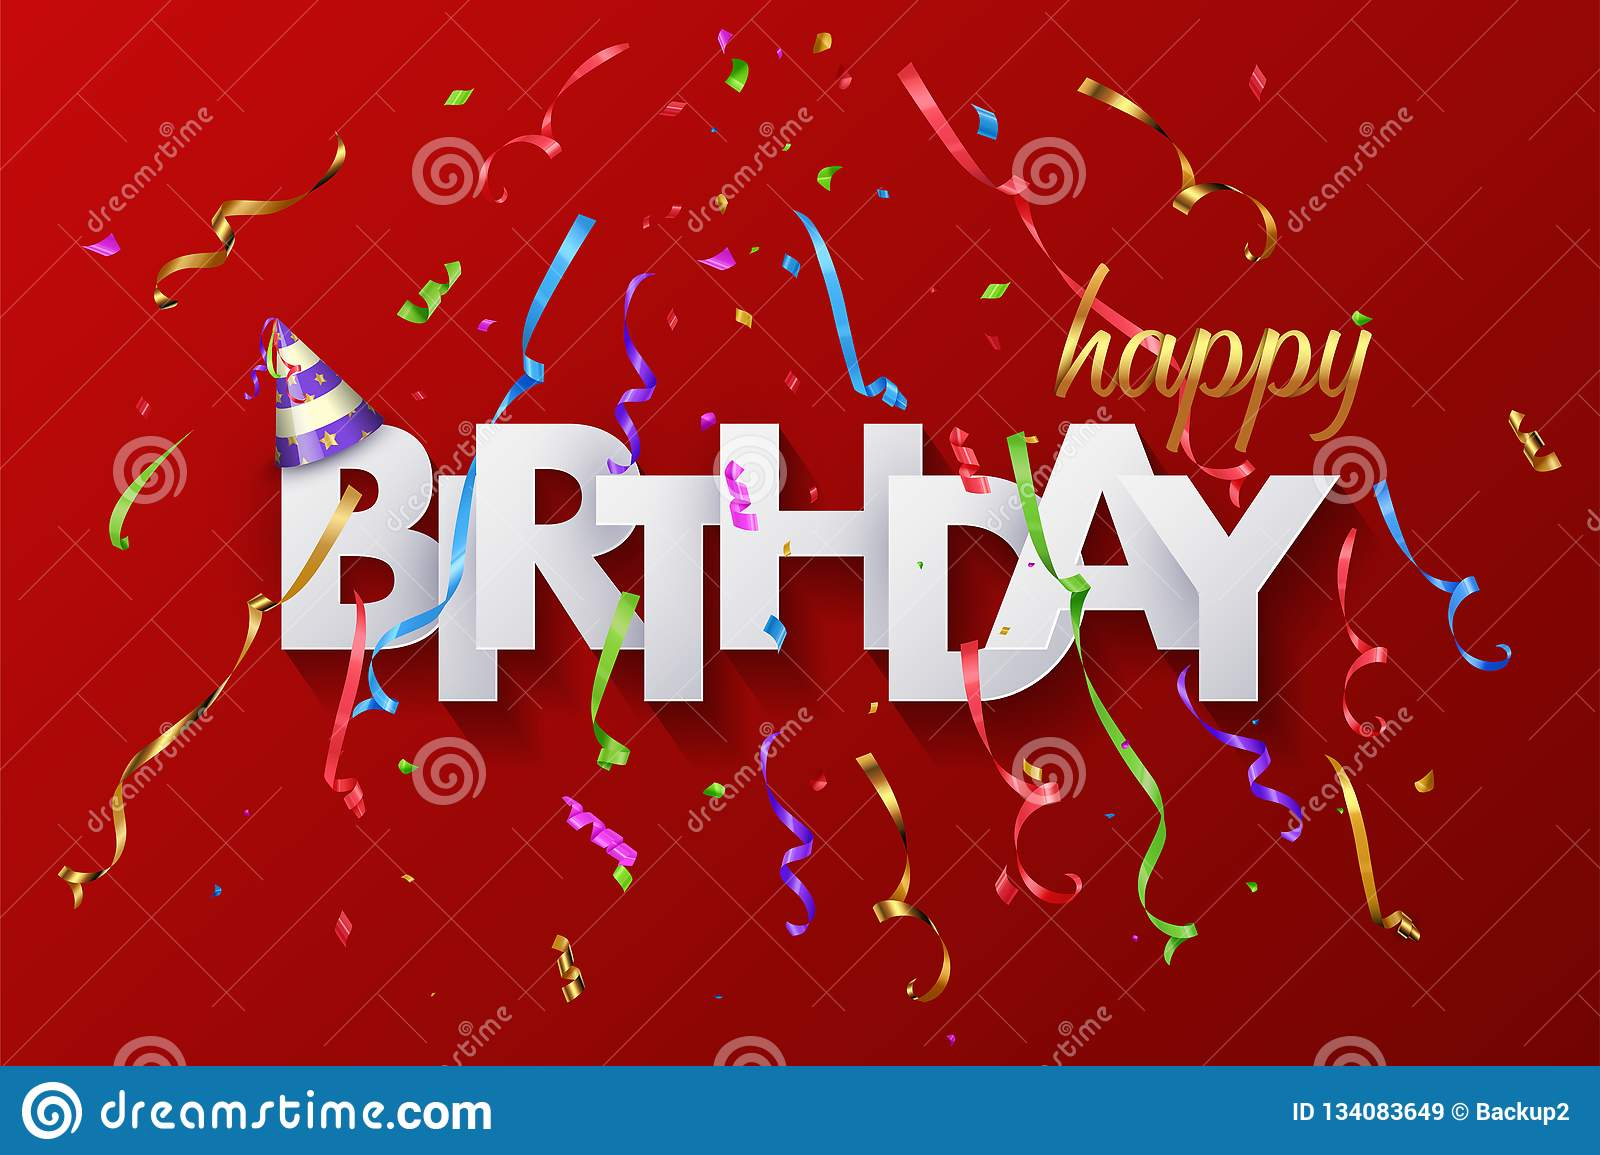 Happy Birthday Greeting Card Design With Paper Cut Letters And Colorful Serpentine On Red Background Vector Stock Vector Illustration Of Festive Carnival 134083649